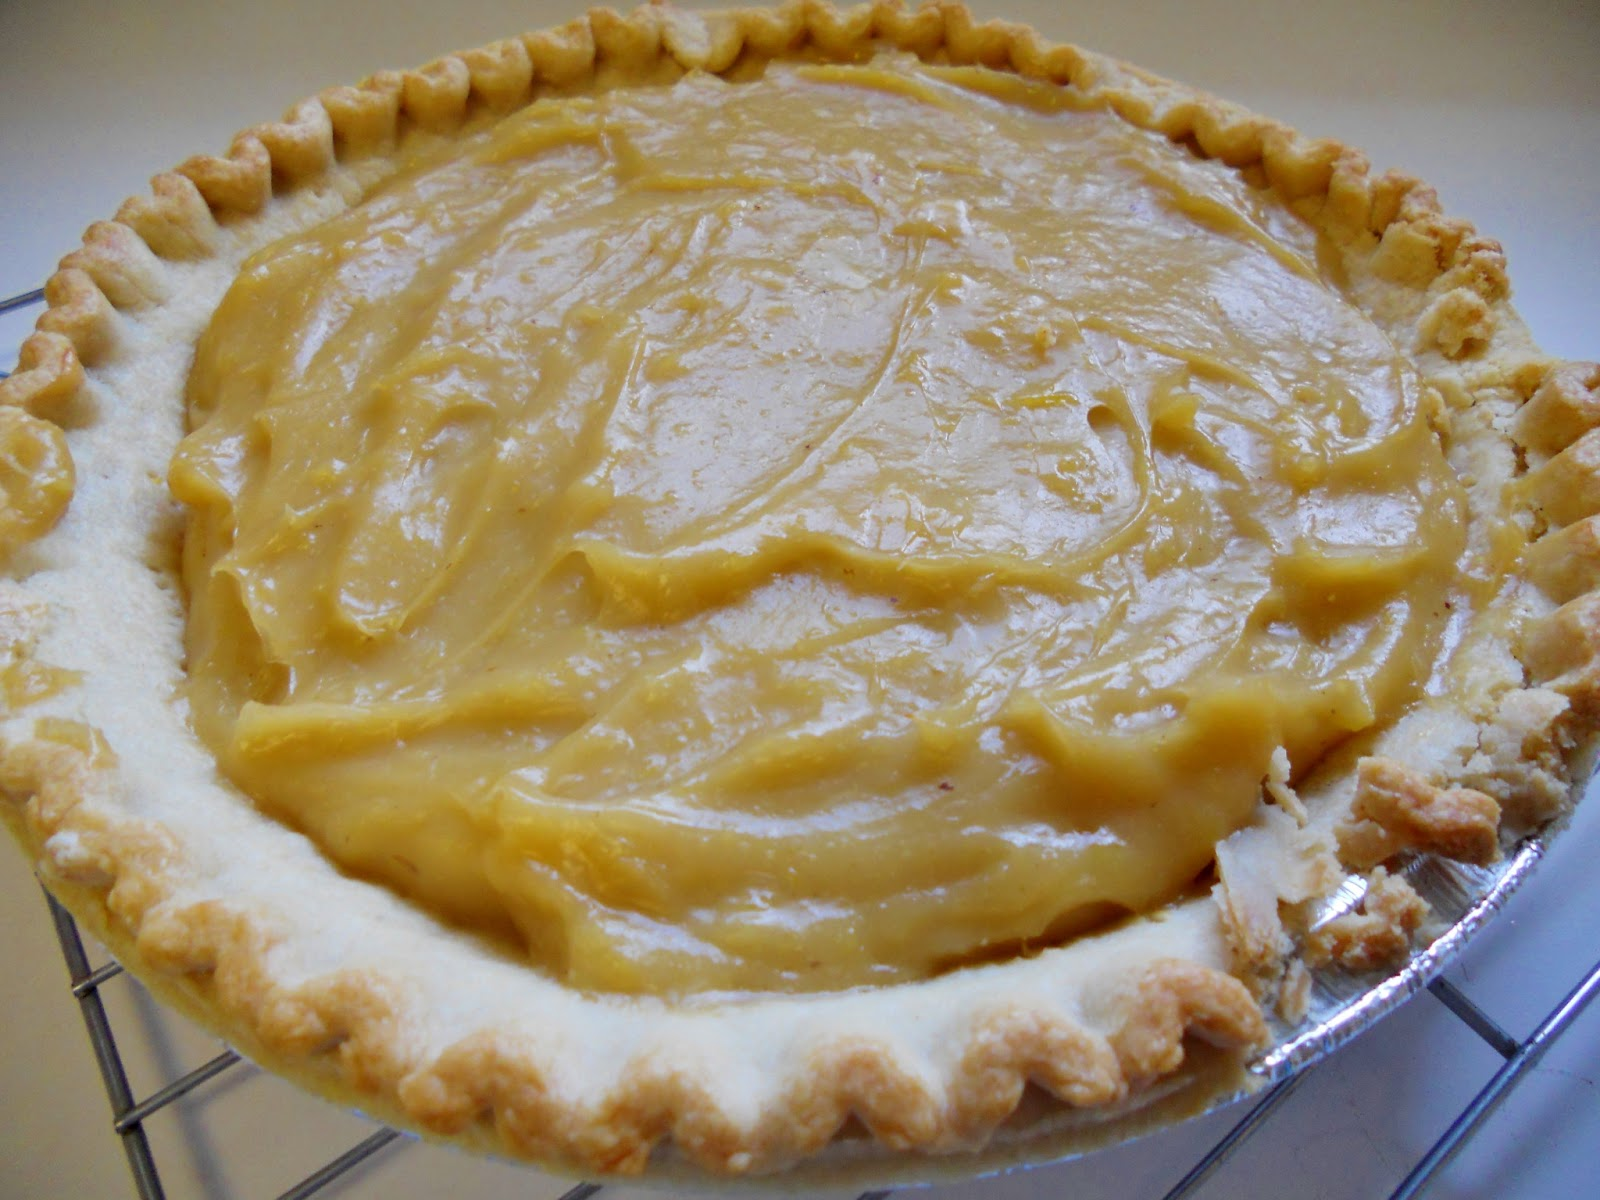 ... , Pies, & Preschool Pizzazz: Friday Pie-Day: Butterscotch Pie